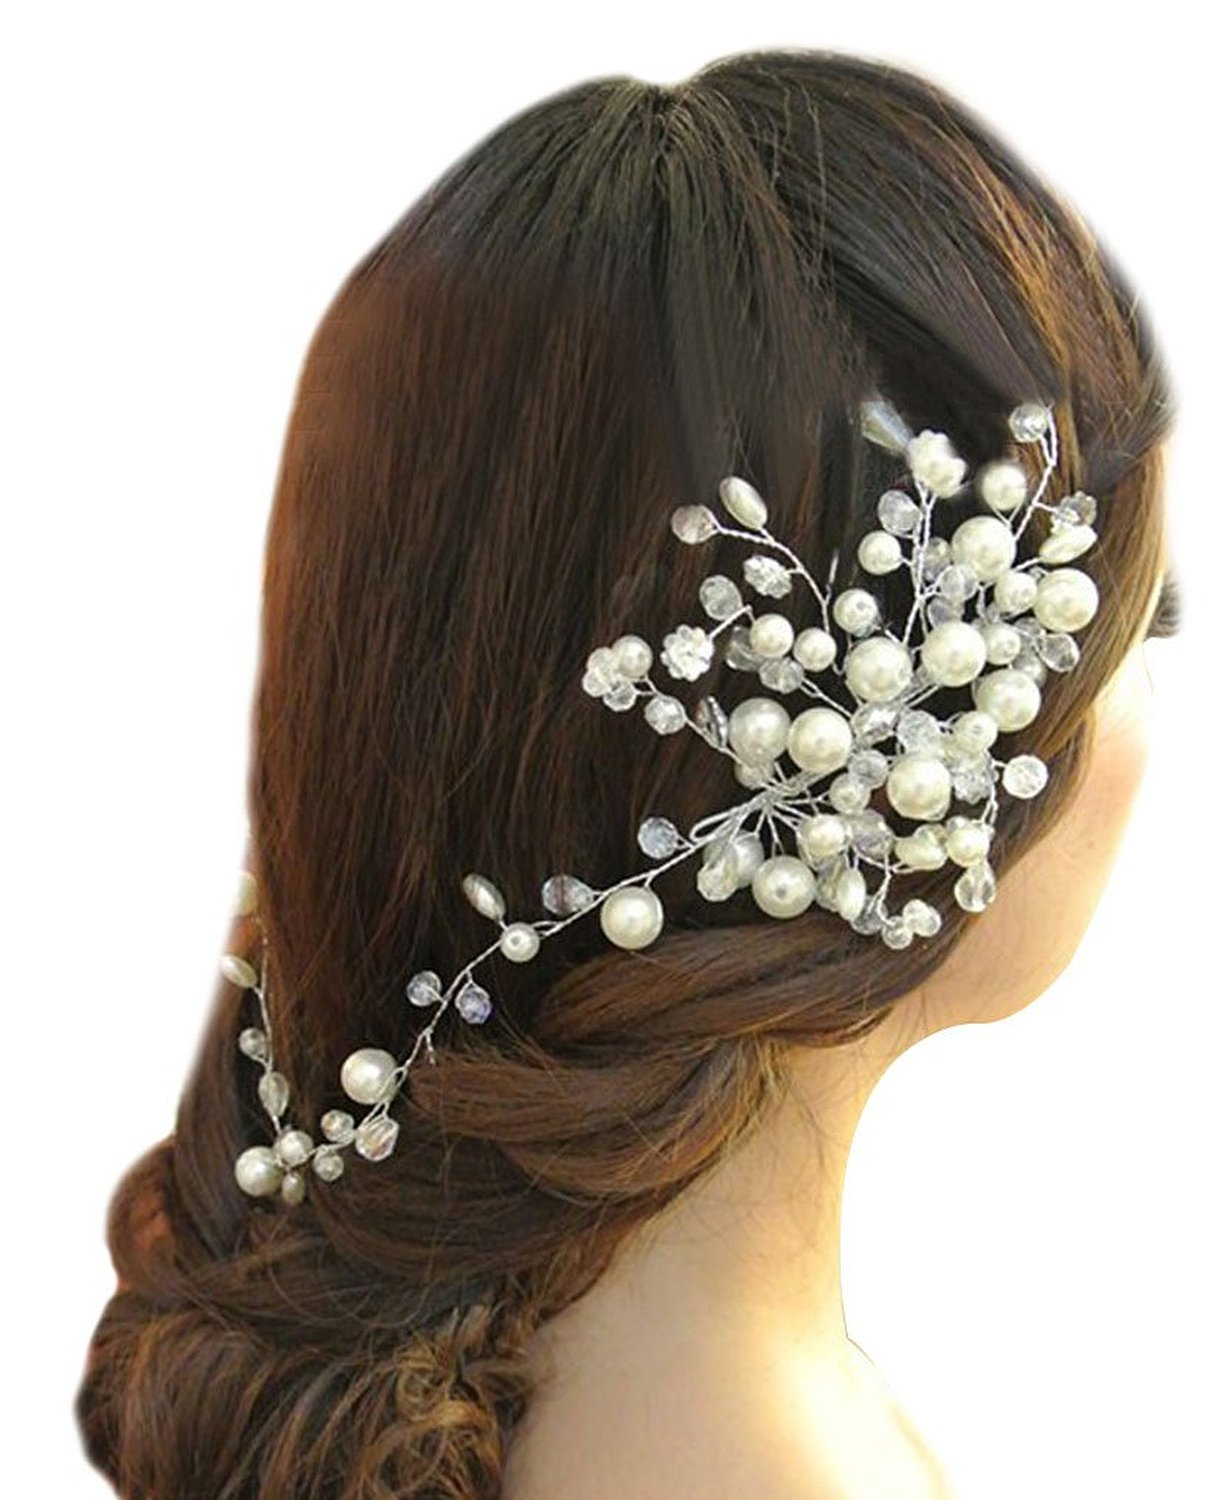 Simulated Crystal and Faux Pearl Bouquet Bridal Hair Accessory, White, One Size